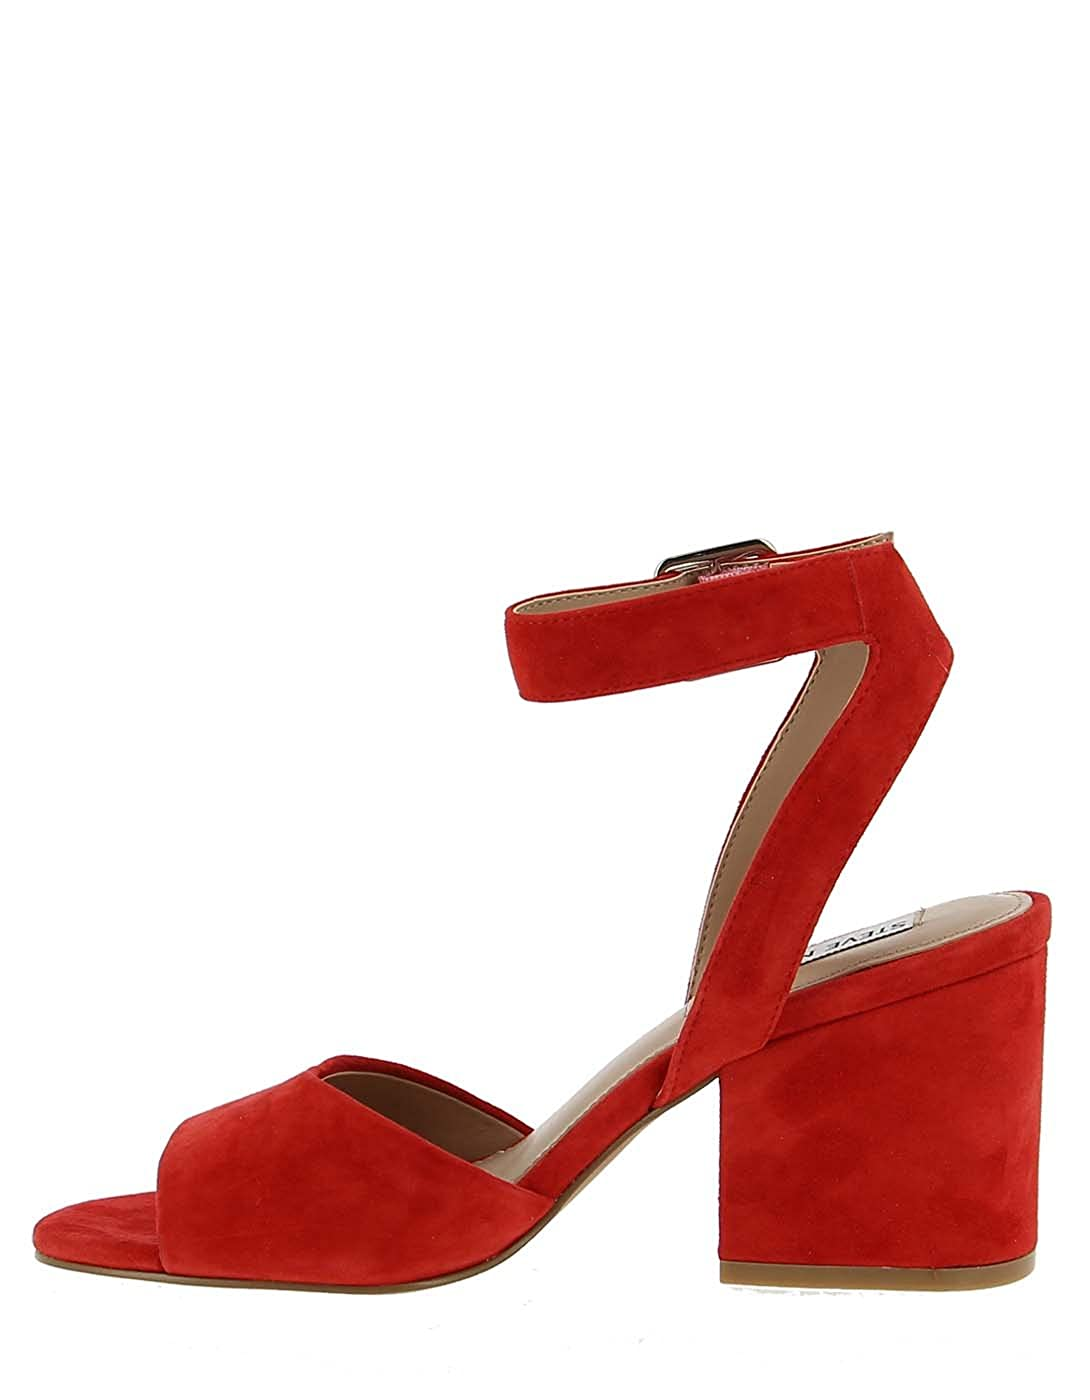 Steve Madden Red Heel Sandal by Red Red by 8d555b